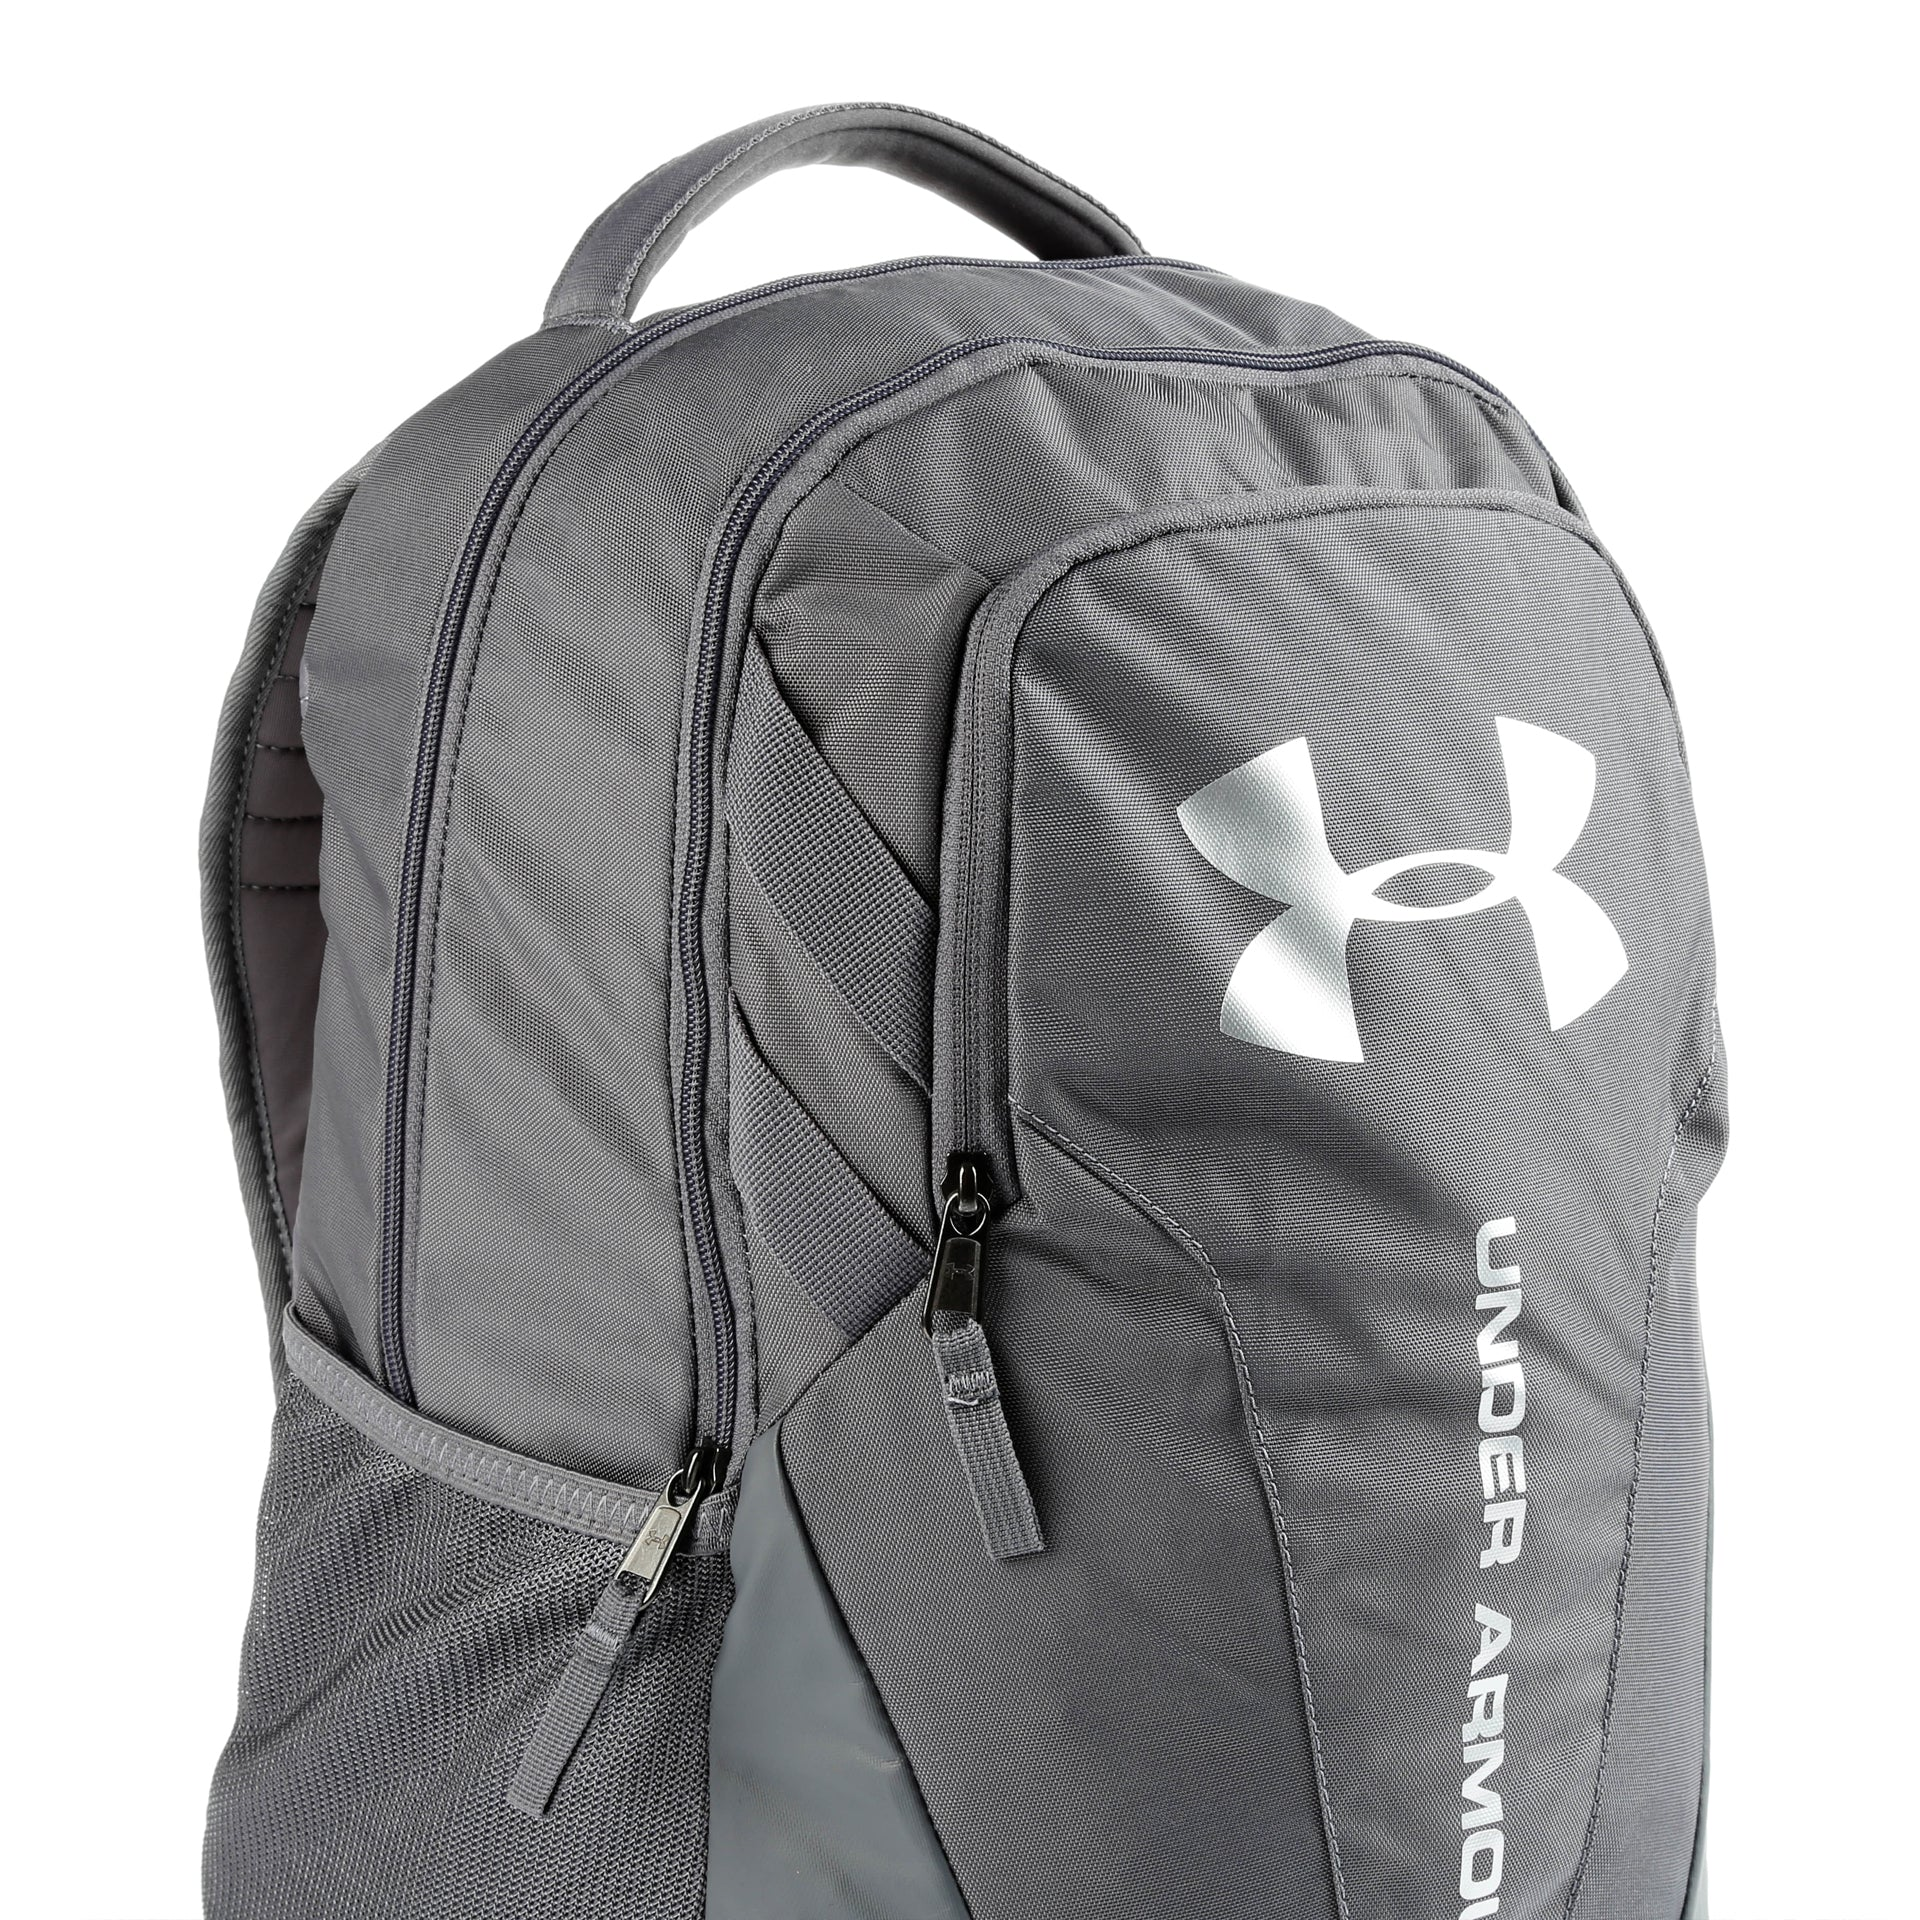 Under Armour Hustle 3.0 Backpack - Graphite - New Star 25f36972588f8